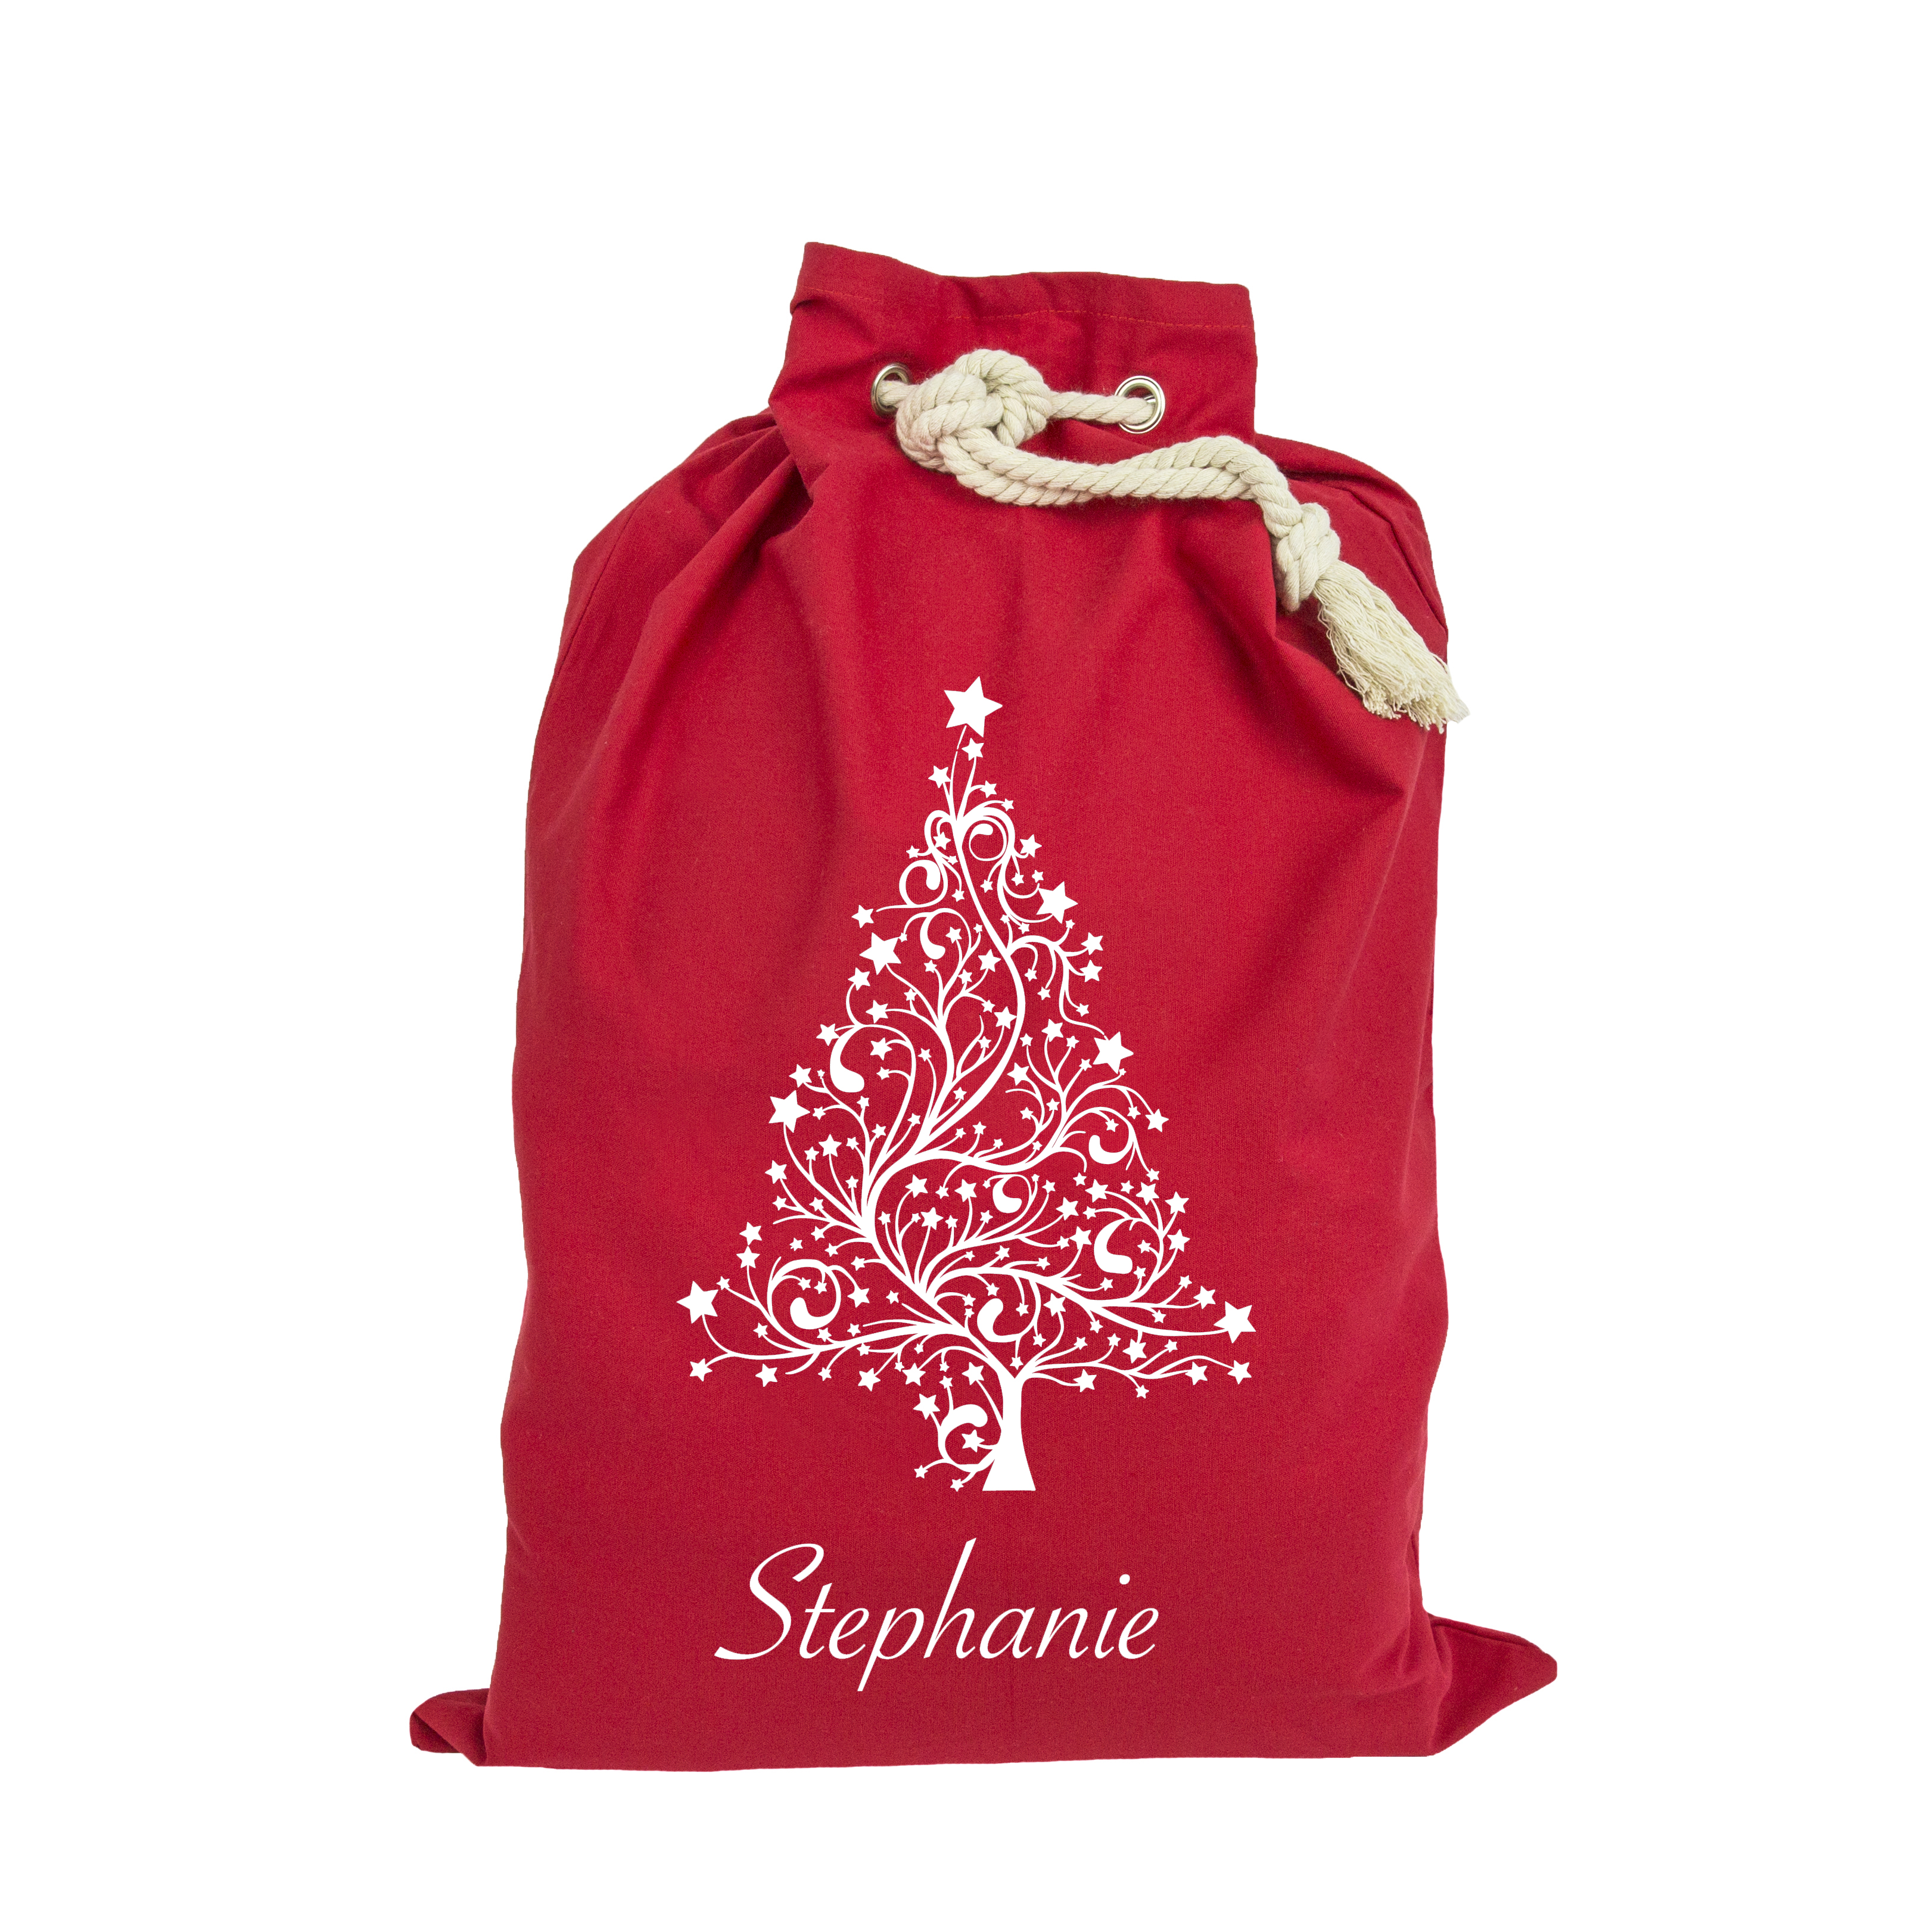 Red and white Christmas tree personalised Santa sack